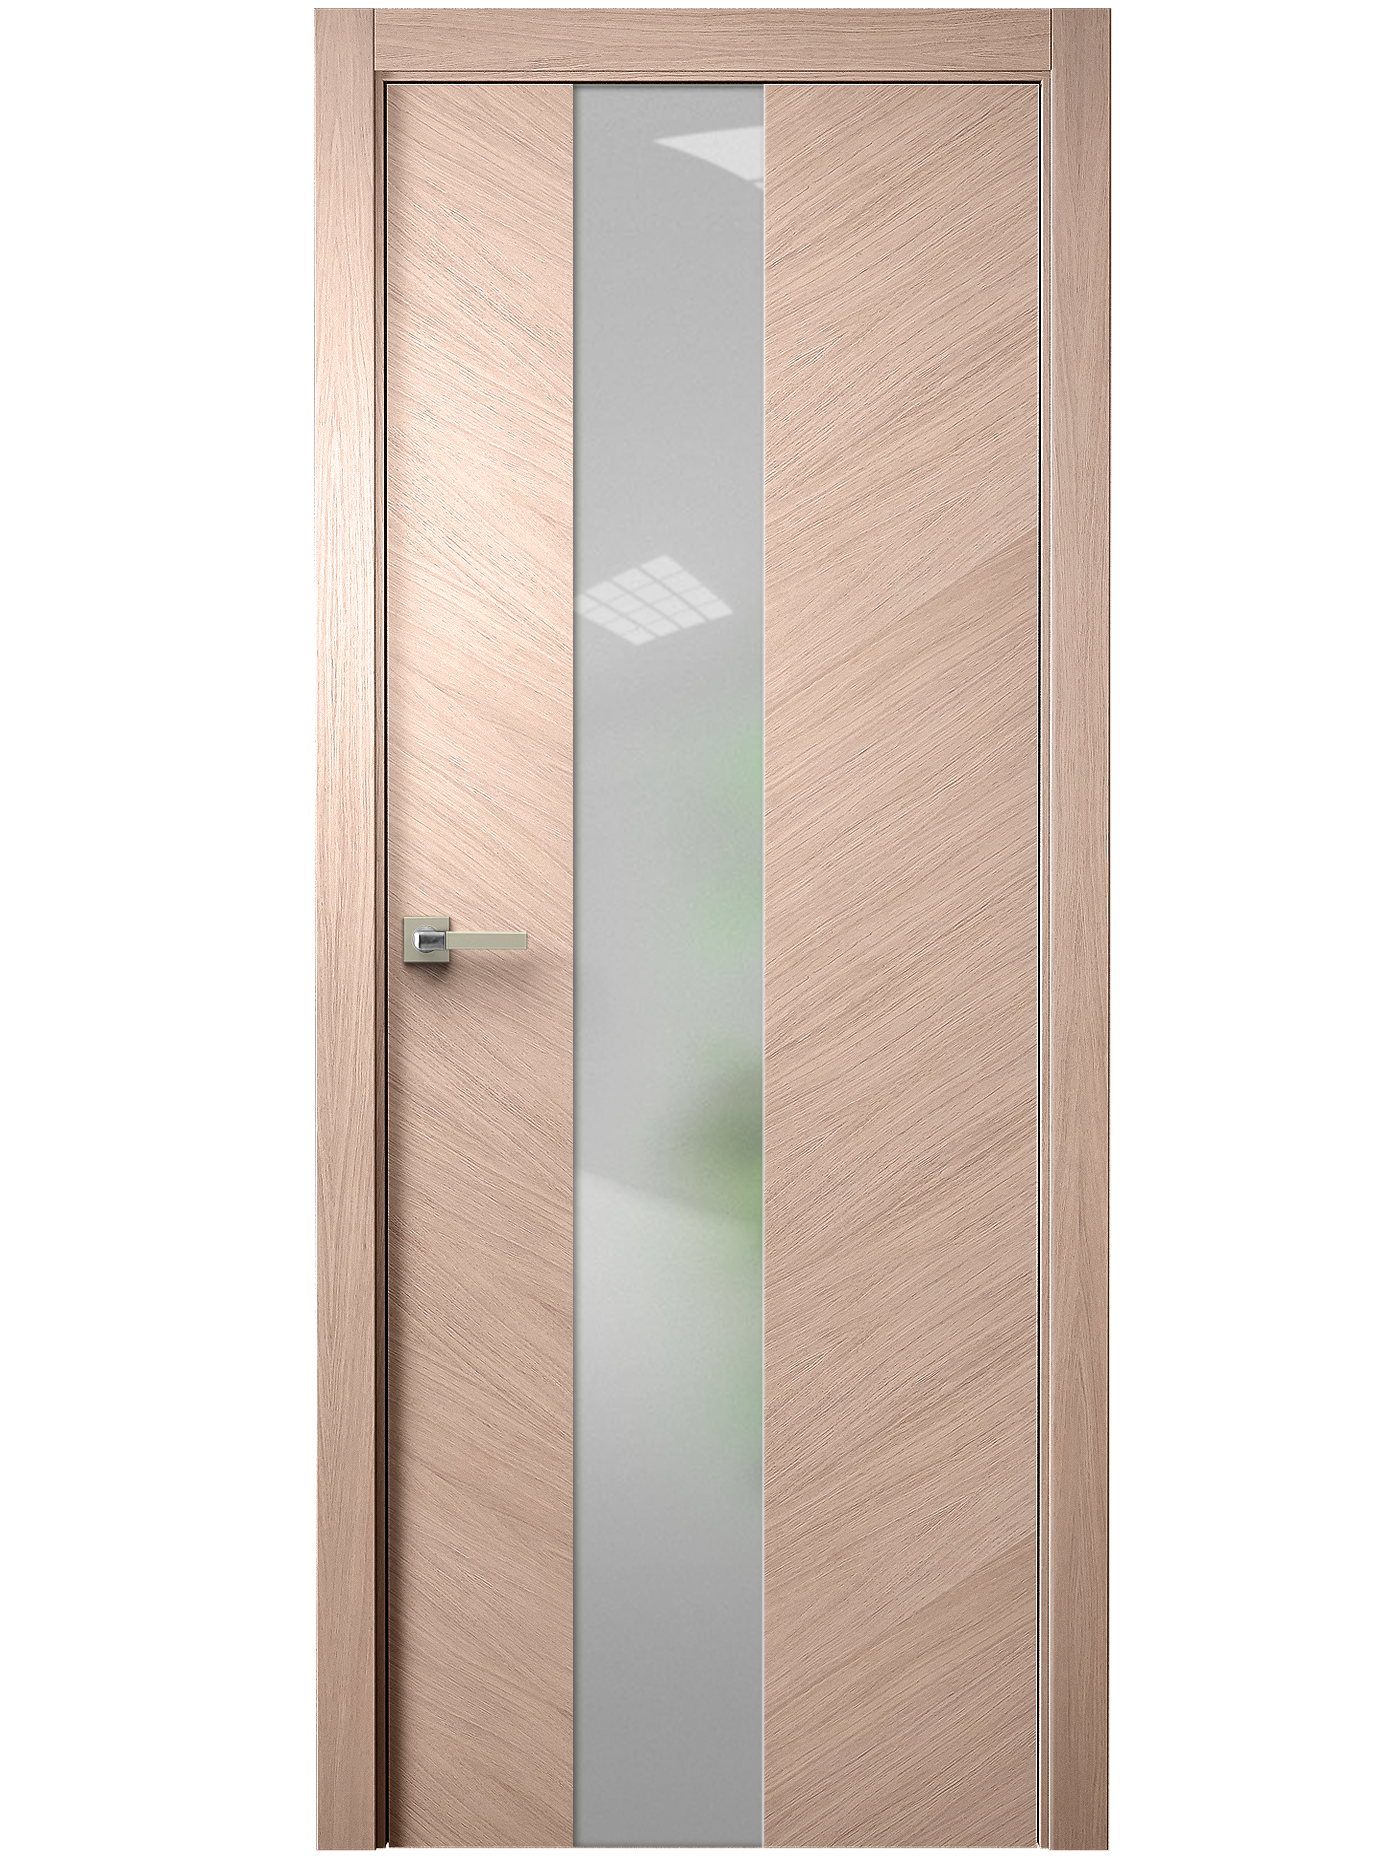 Image Tera V Vetro Interior Door Brushed Oak Tone 12 0